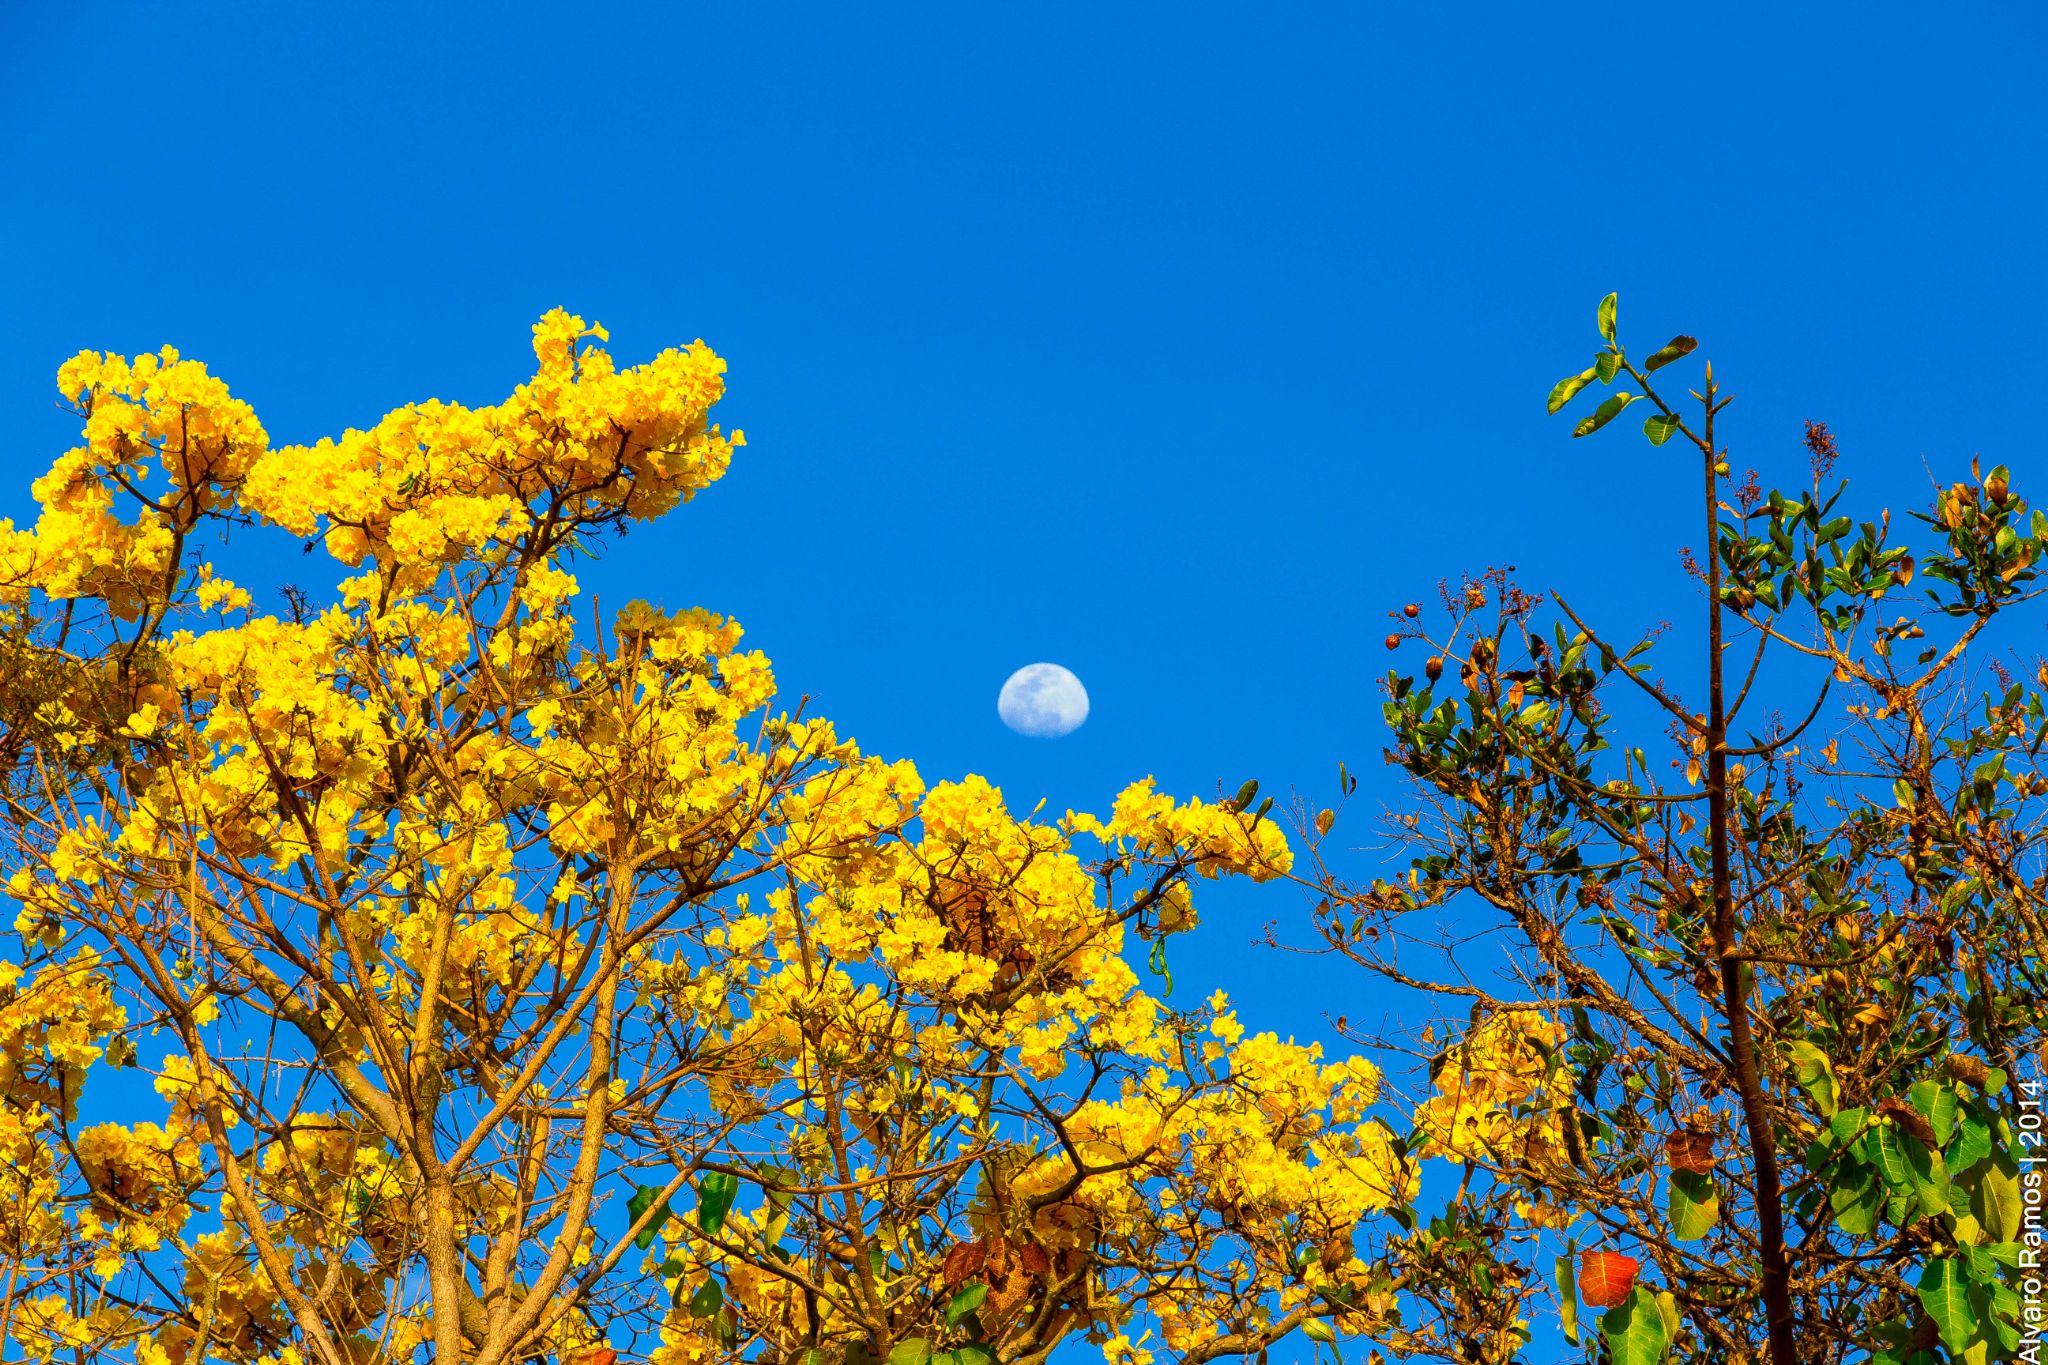 The Yellow Ipe and the Moon  by alvaro.ramos.739